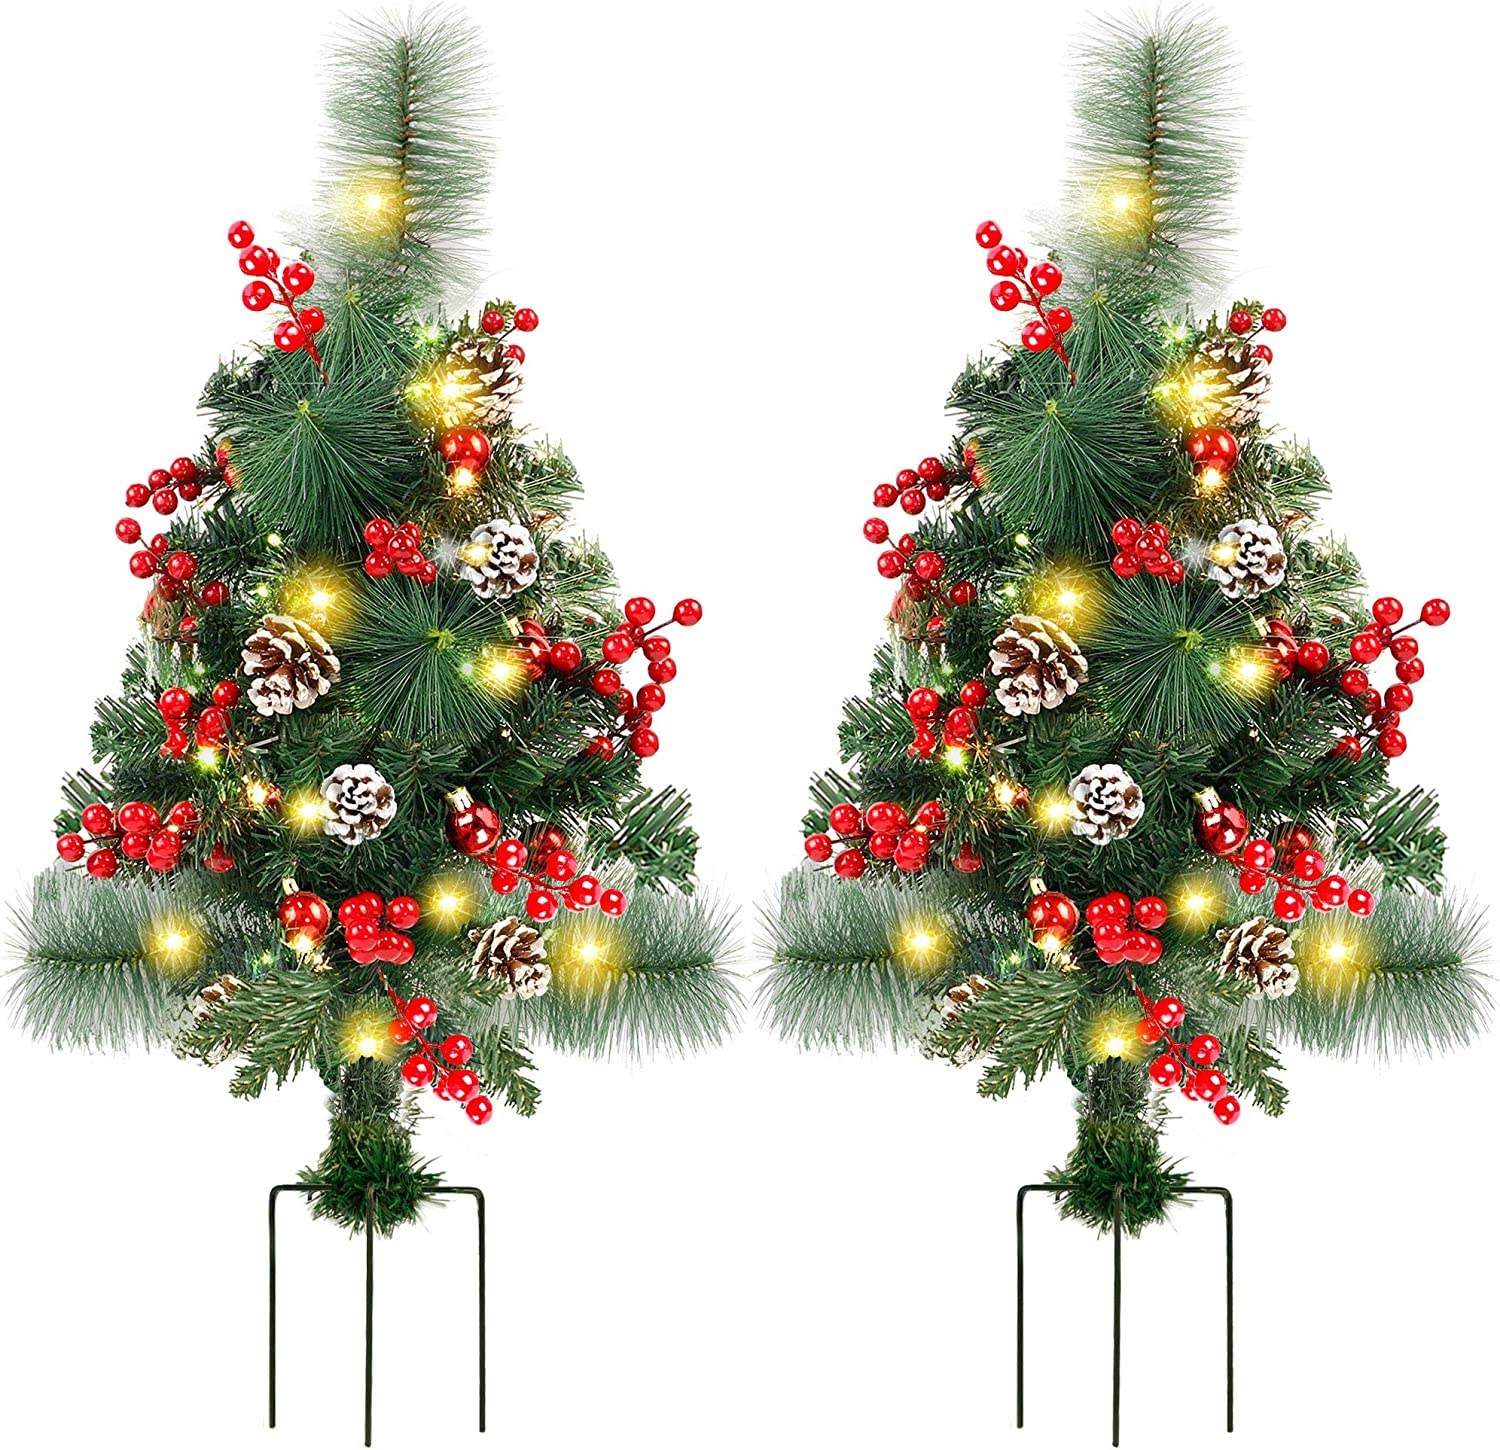 Lulu Home 2 Pack 2 Ft Pre-Lit Pathway Christmas Trees with Stake, Battery Operated 60 LED Lighted Small Christmas Trees Yard Stake Outdoor Decoration with Red Berries, Red Balls, Pine Cones